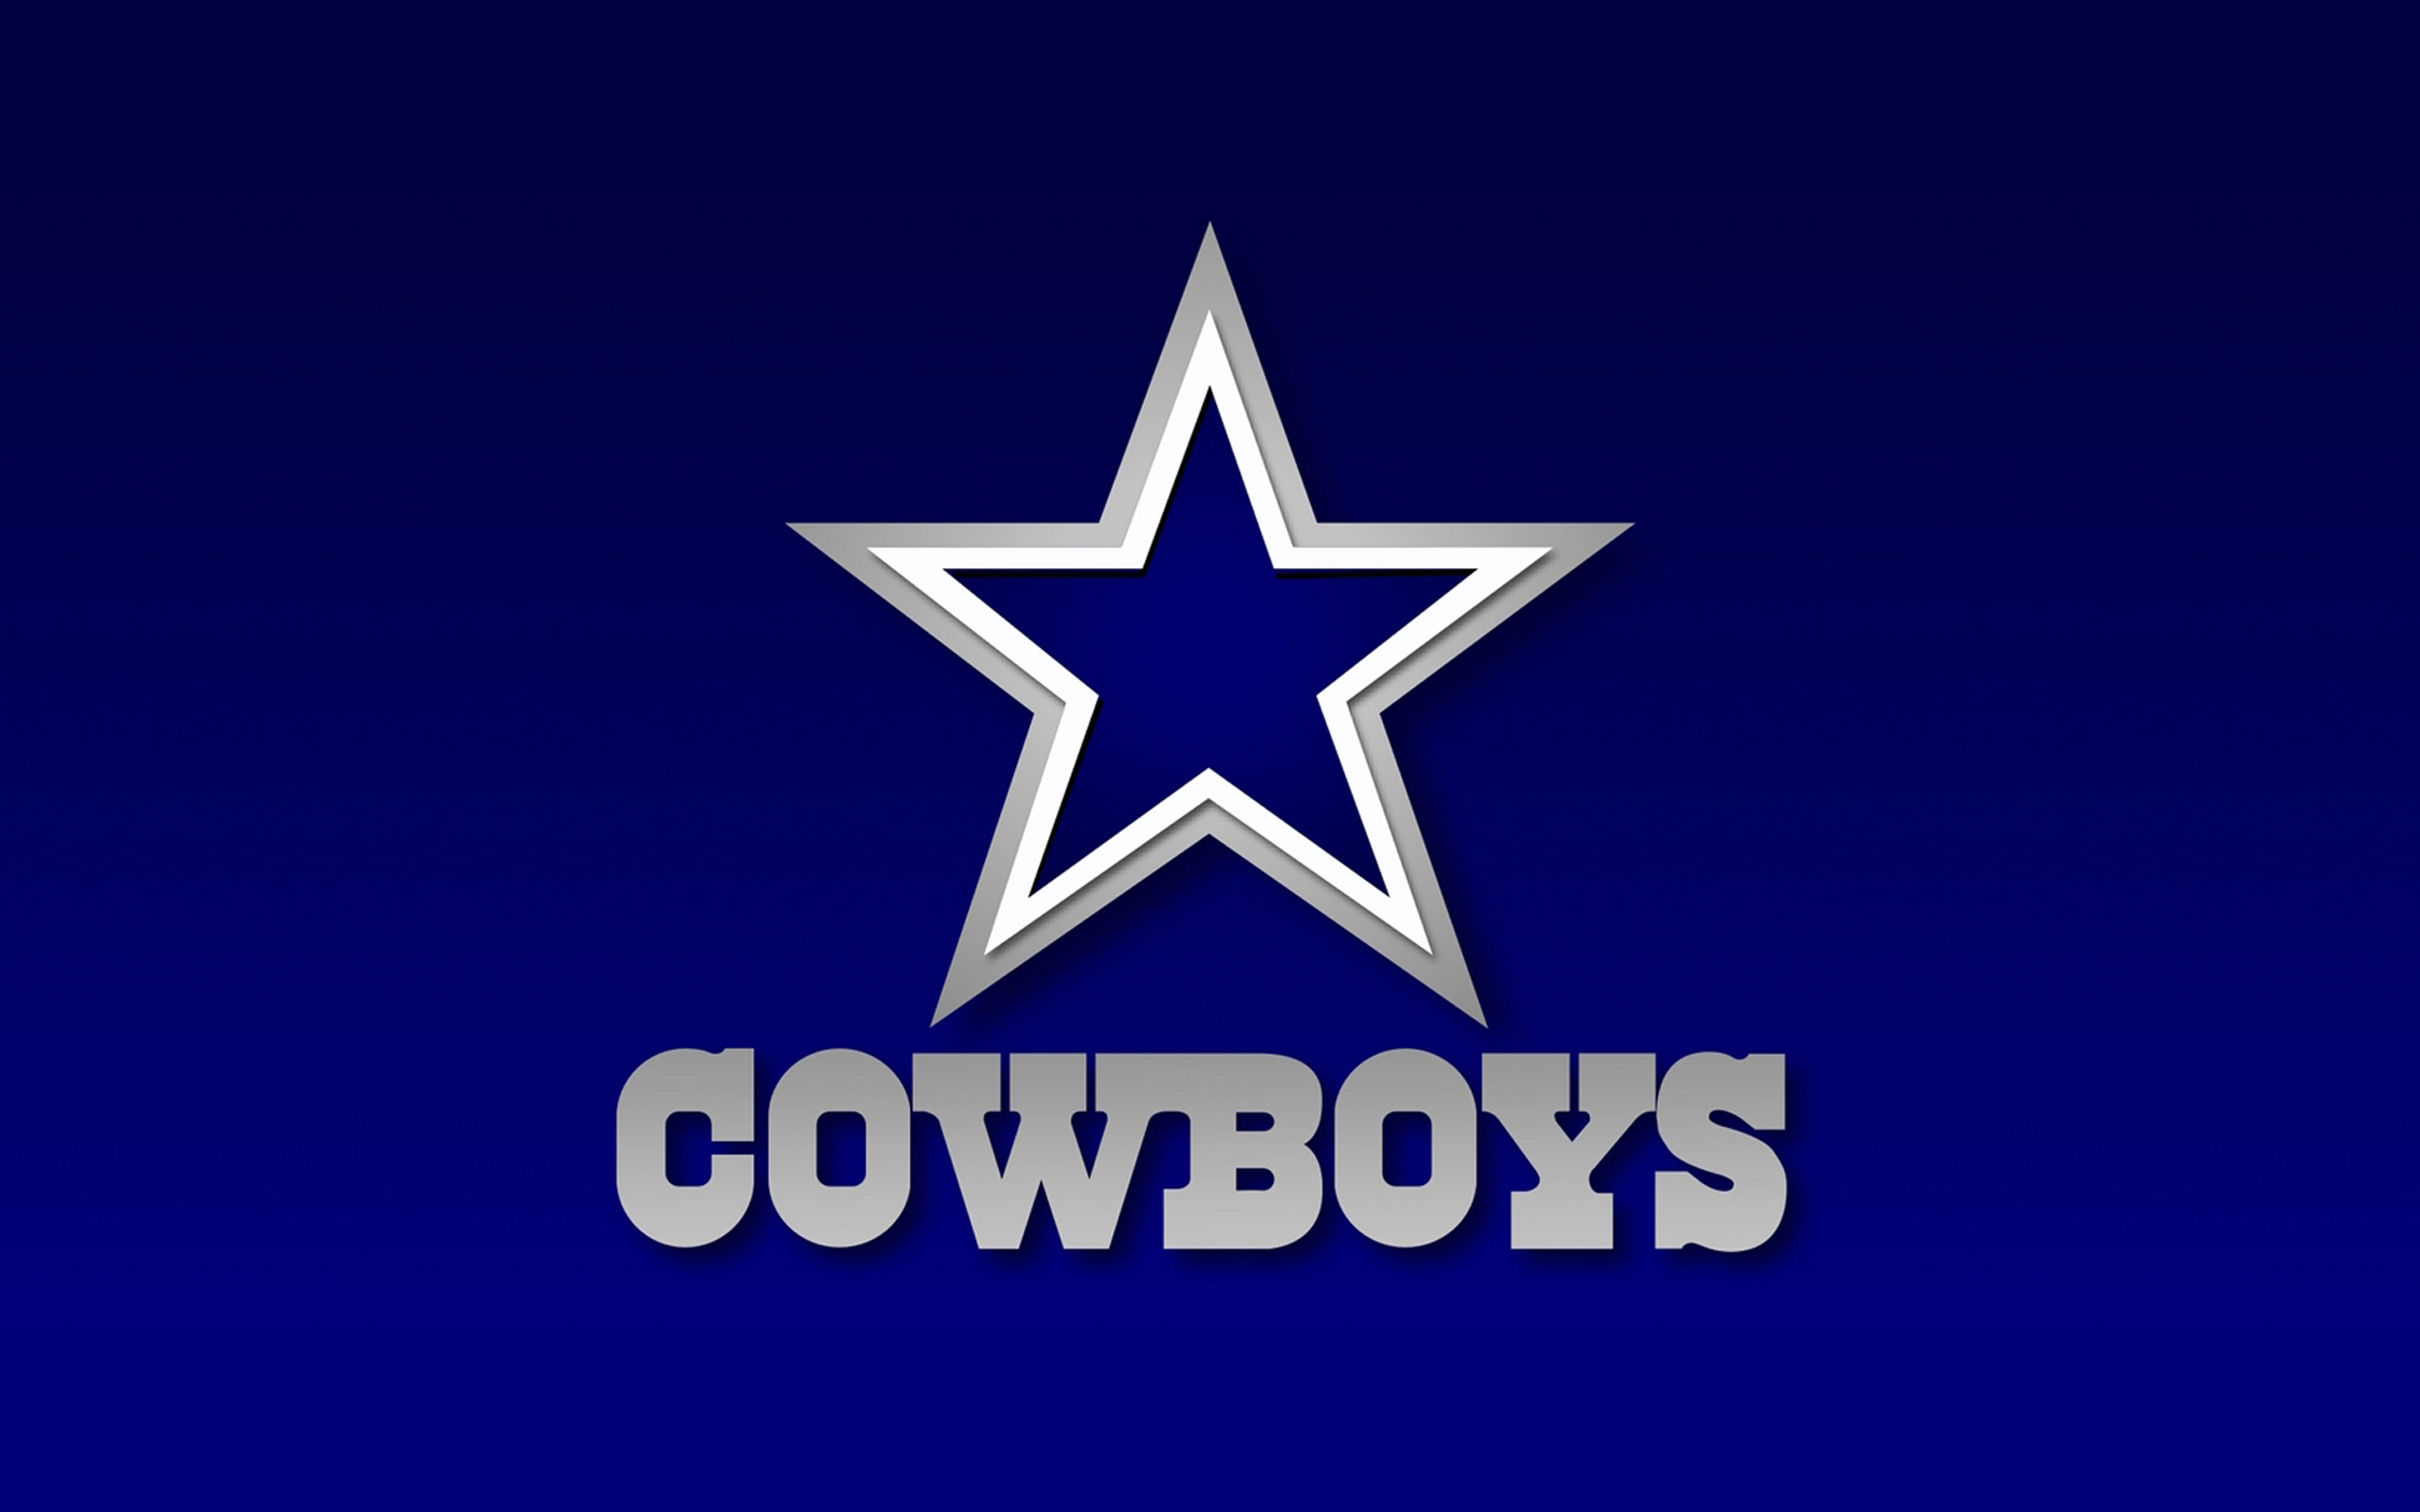 Dallas Cowboys Star Logo Wallpaper